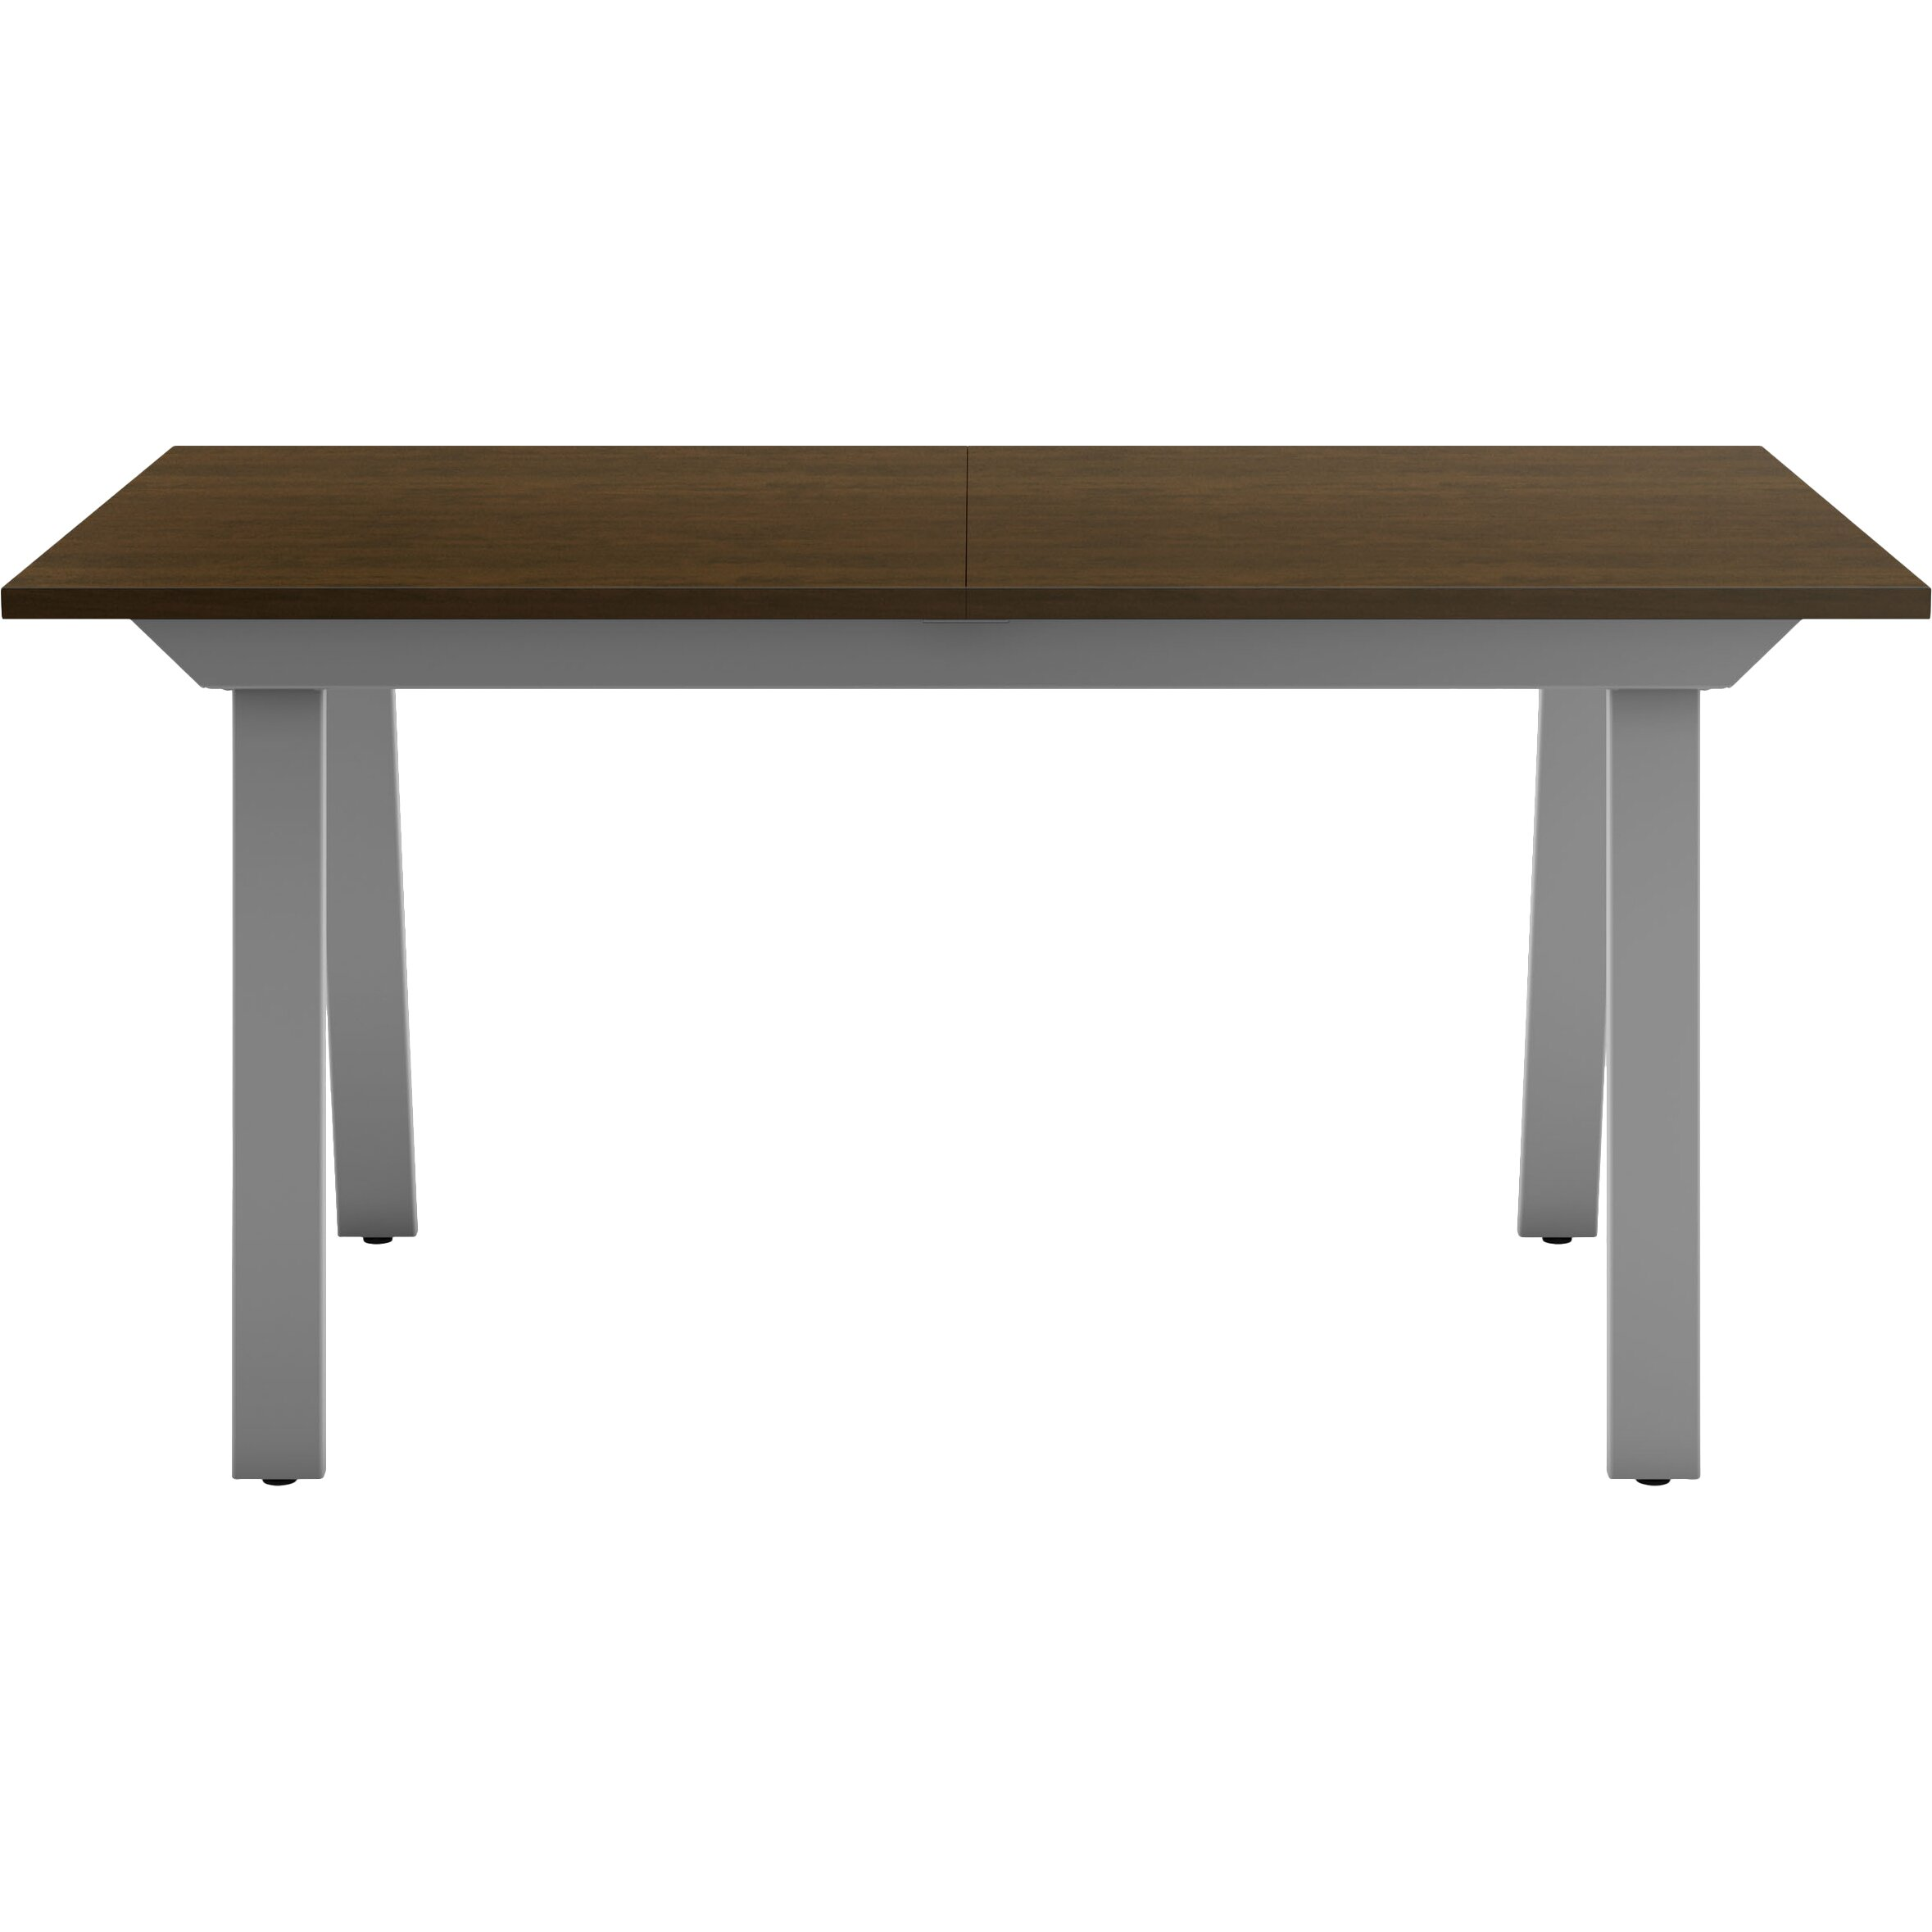 Amisco rectangular conference table reviews wayfair for Table 52 reviews